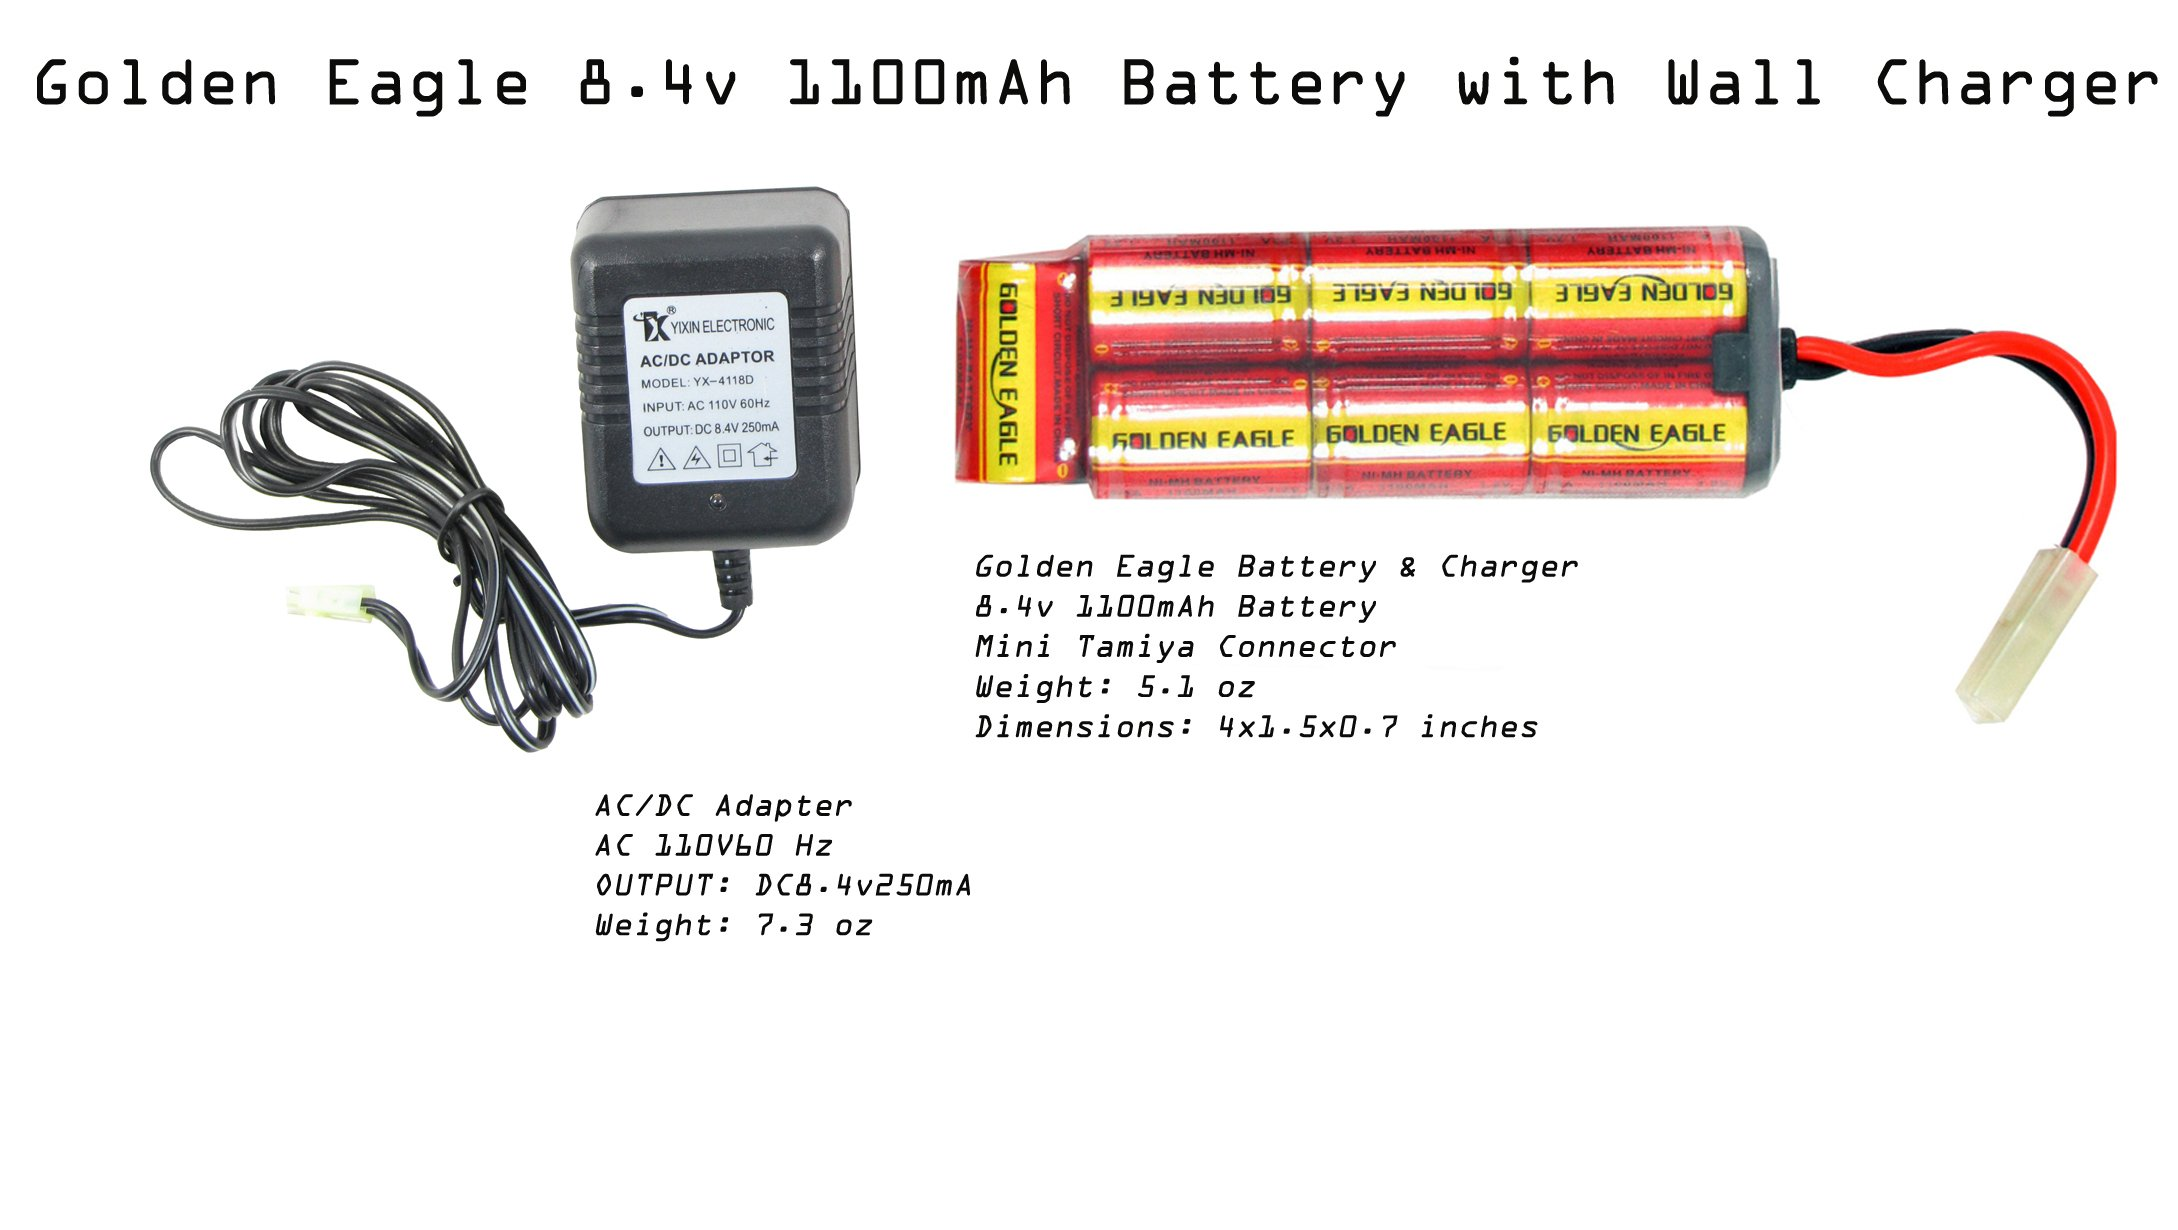 Golden Eagle/JG 8.4v 1100 mAh NiMH Battery and Charger with Mini Tamiya Jing Gong Airsoft Battery and Charger Package AEG Battery 1100